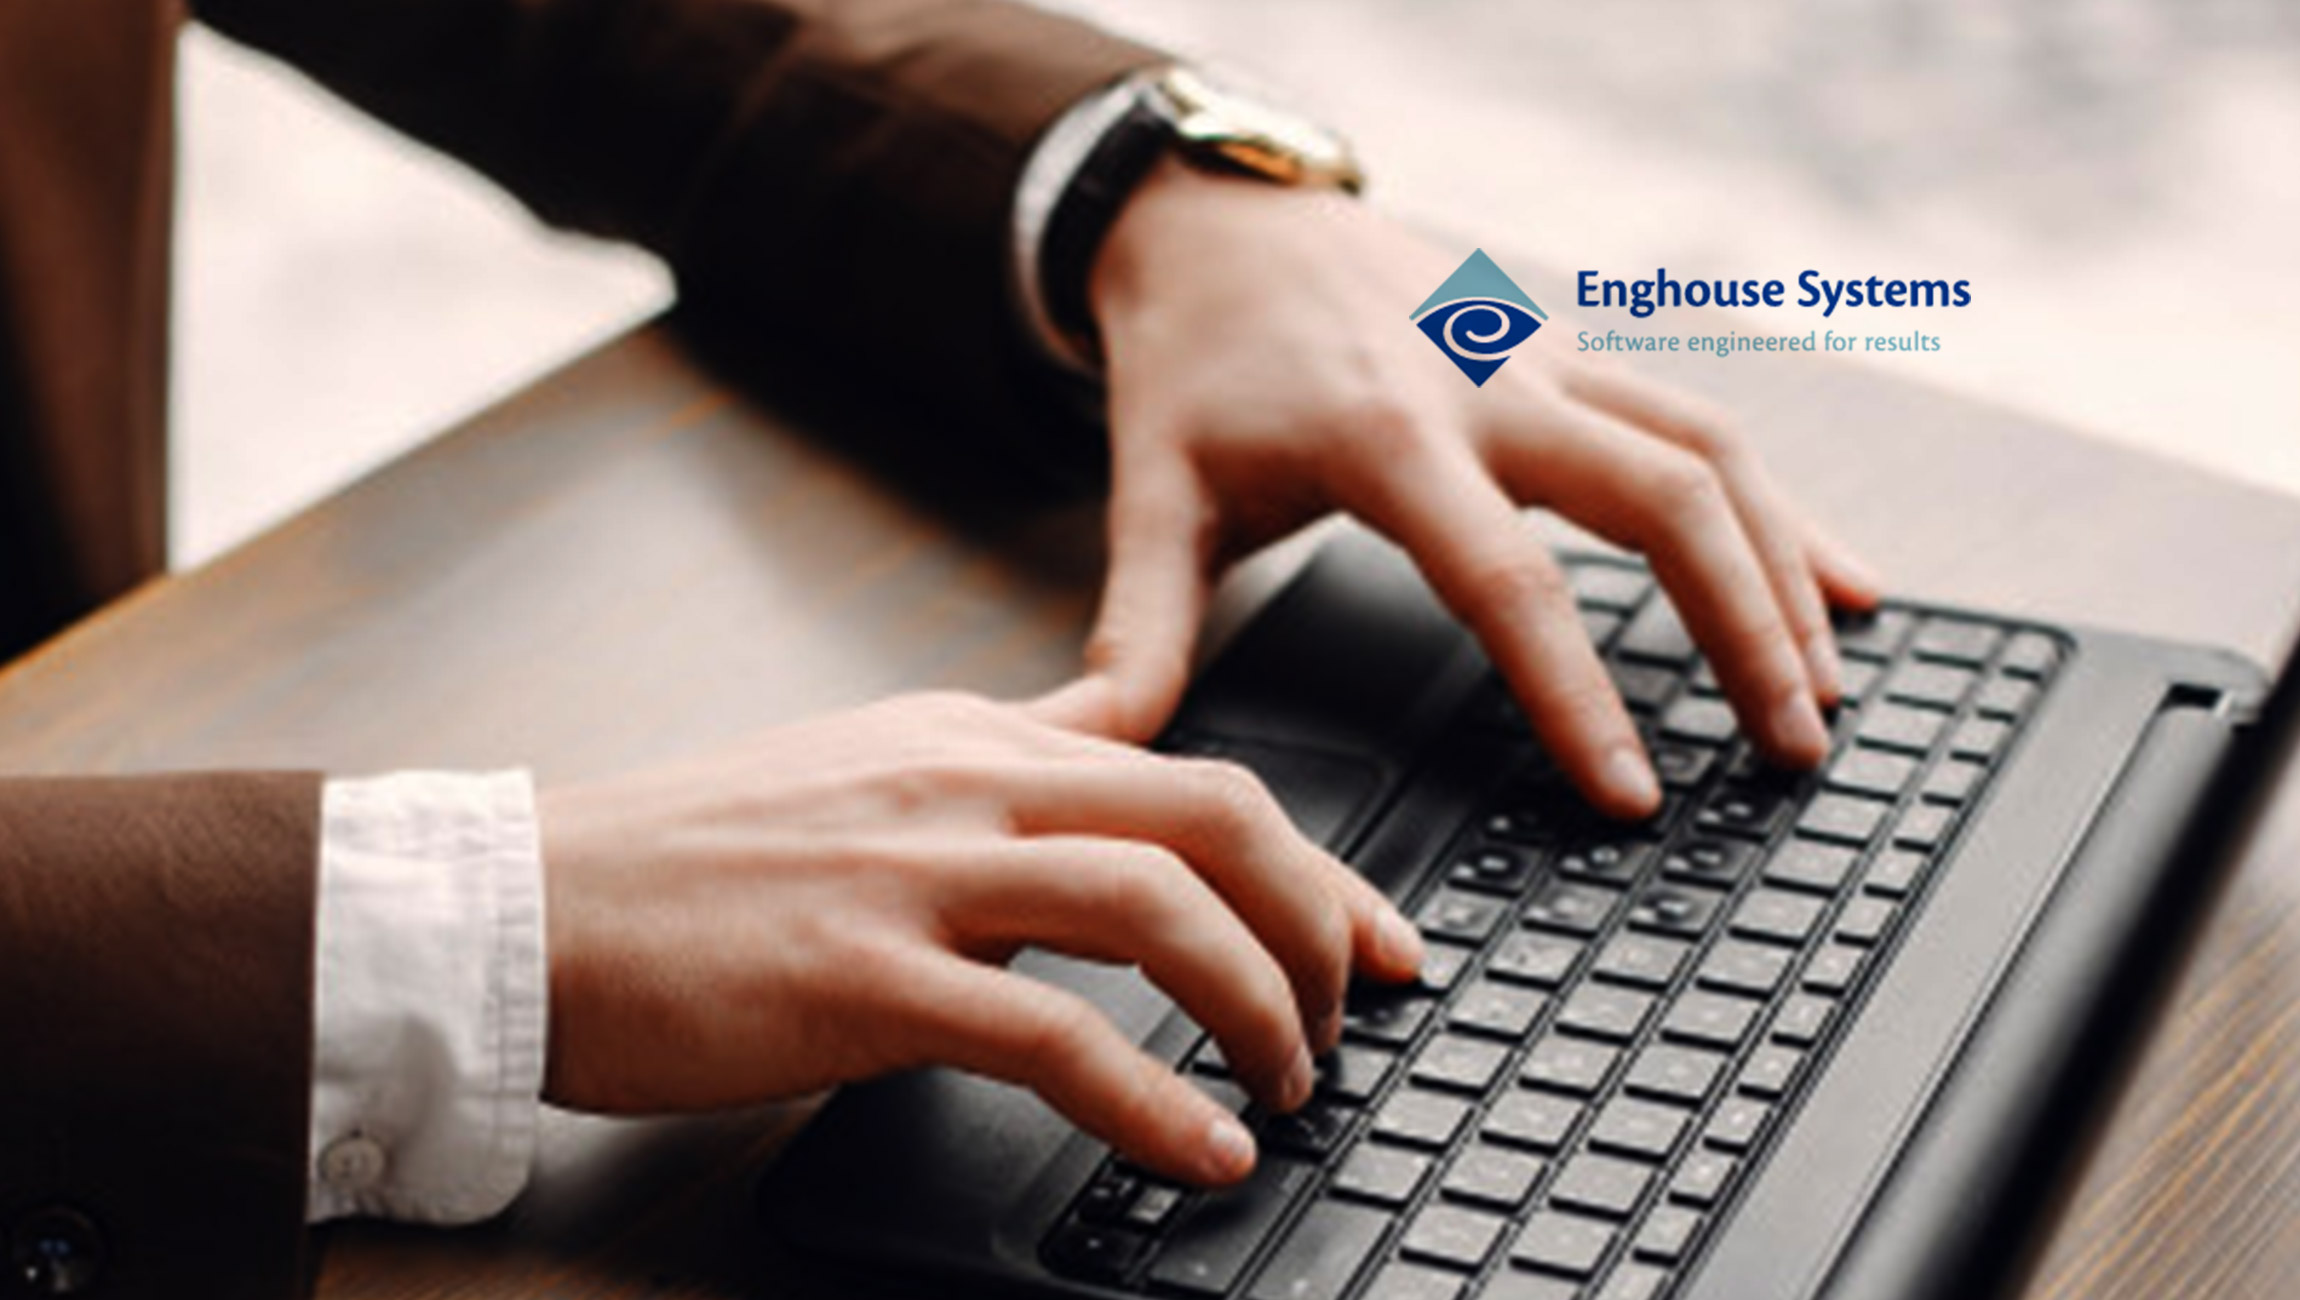 Enghouse Systems Acquires Eptica S.A.